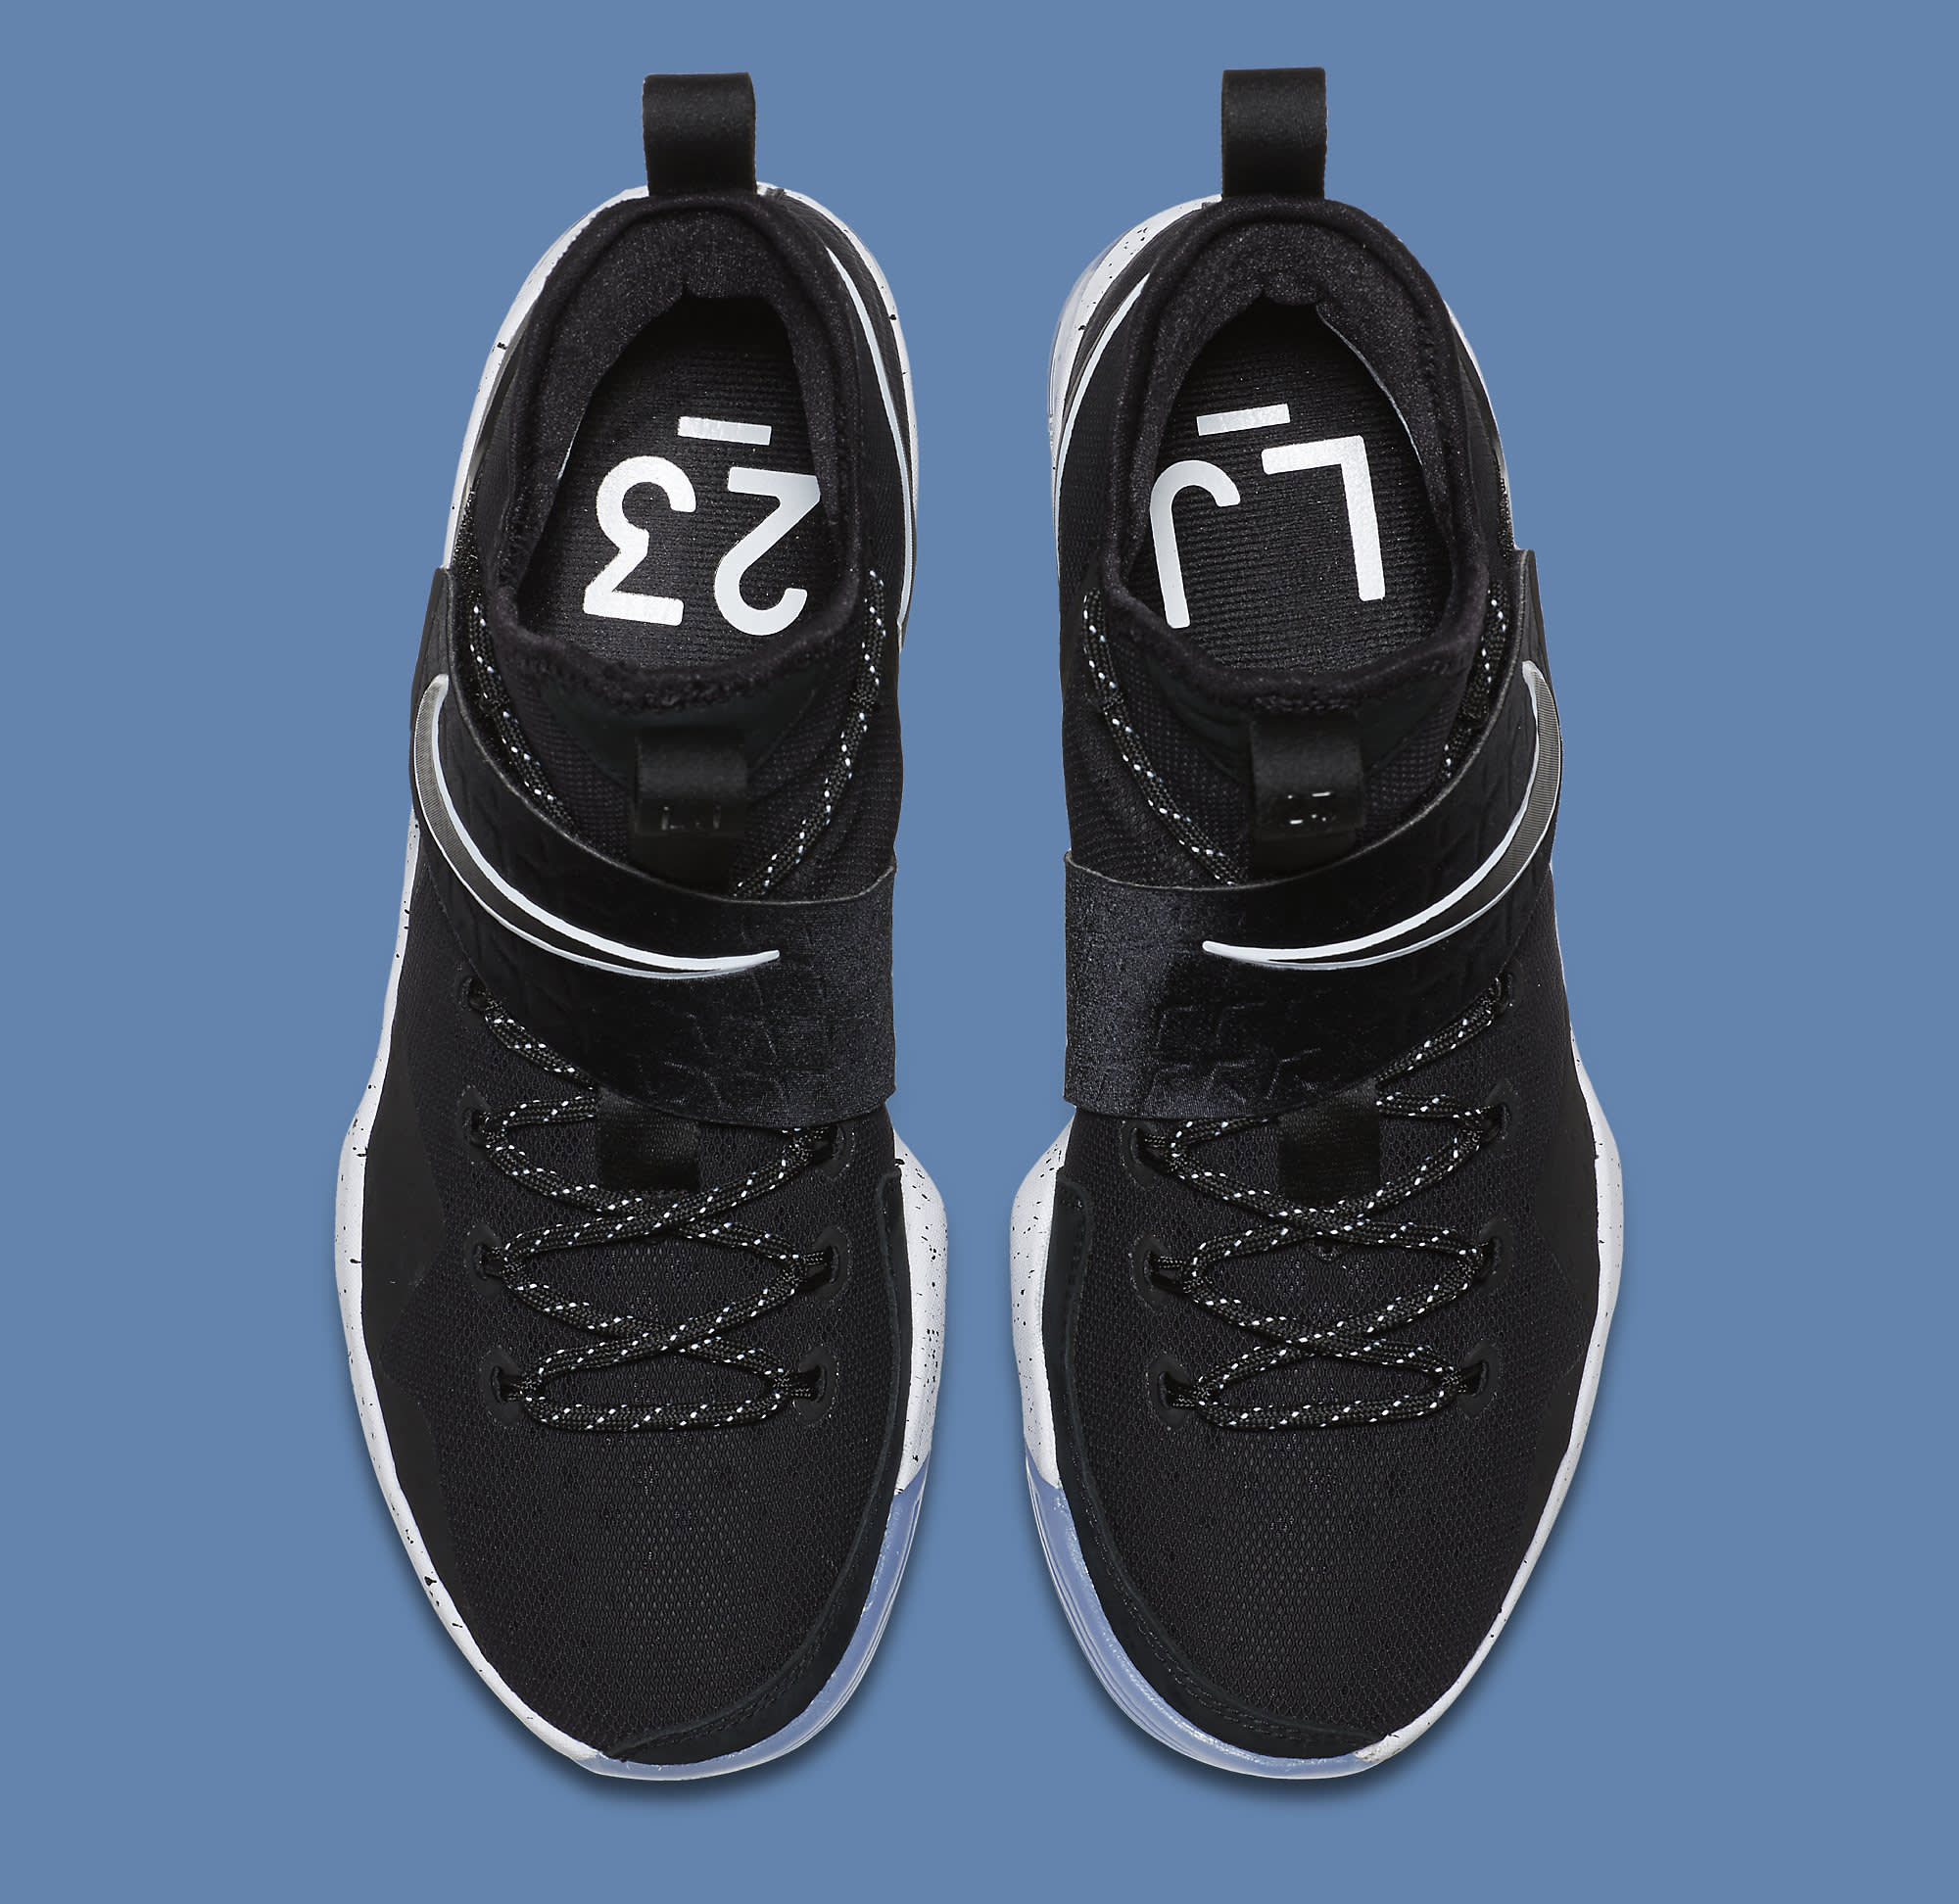 Black Ice Nike LeBron 14 921084-002 Top